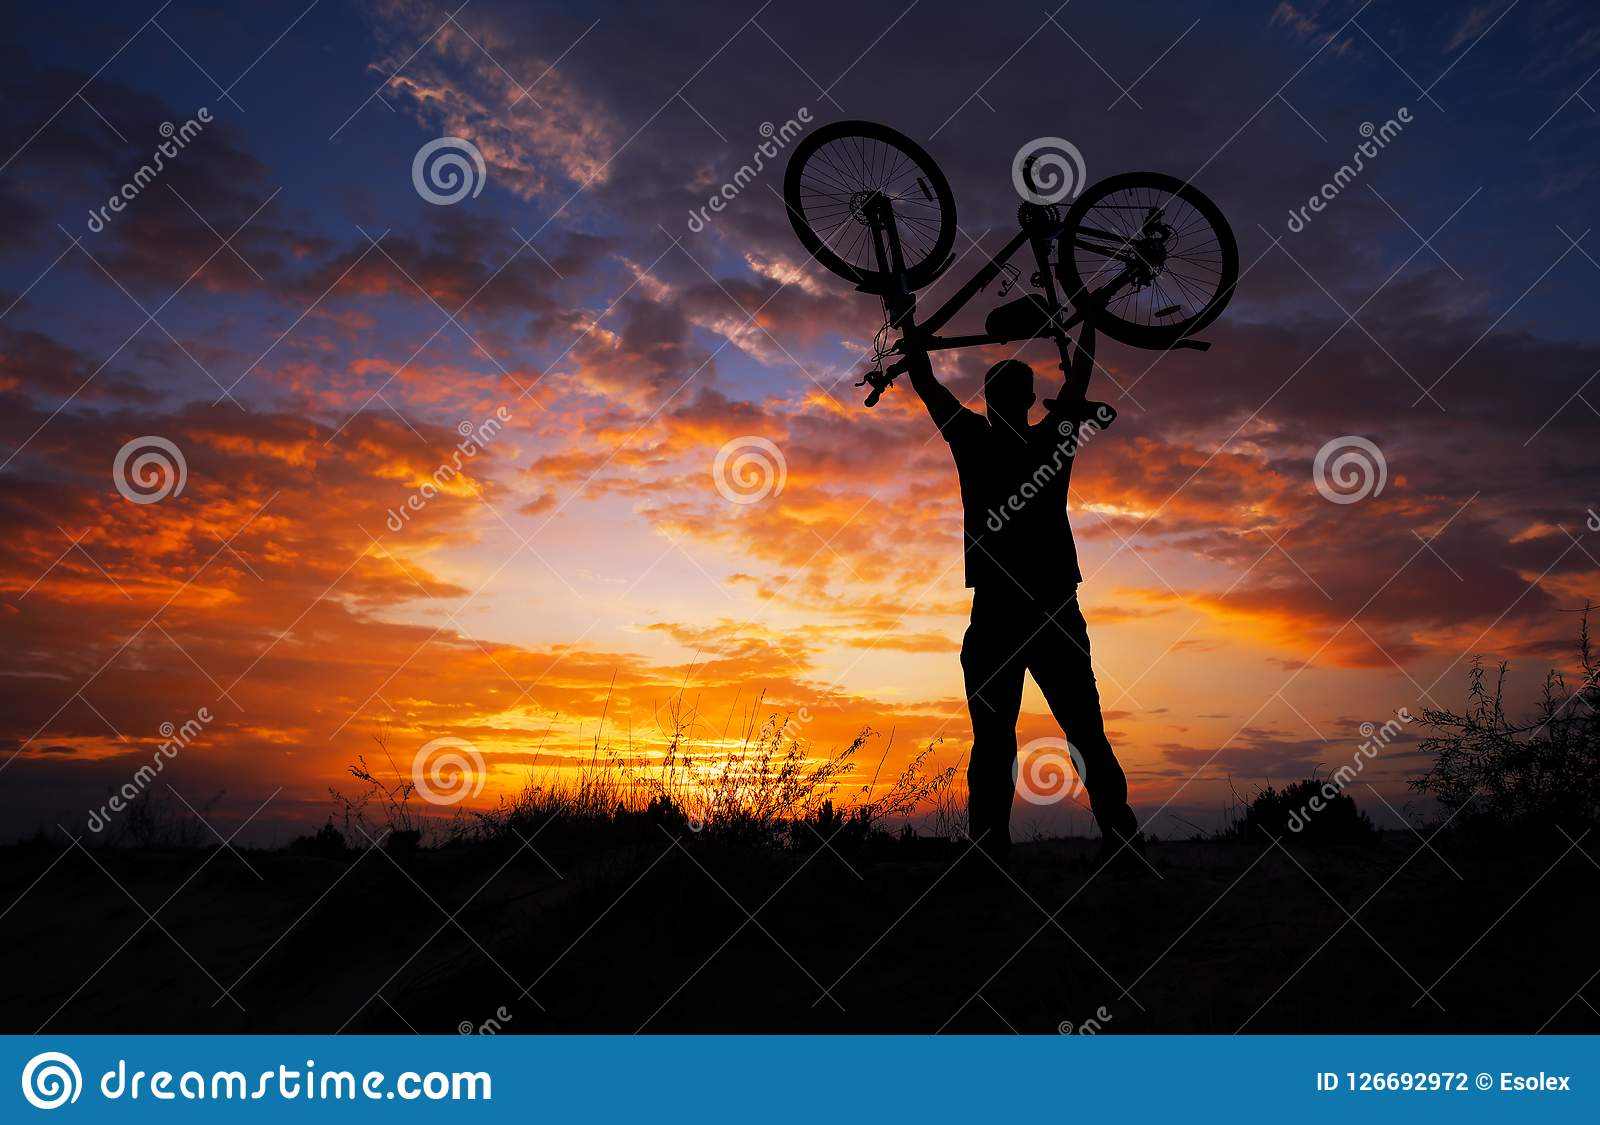 Silhouette the man stand in action lifting bicycle